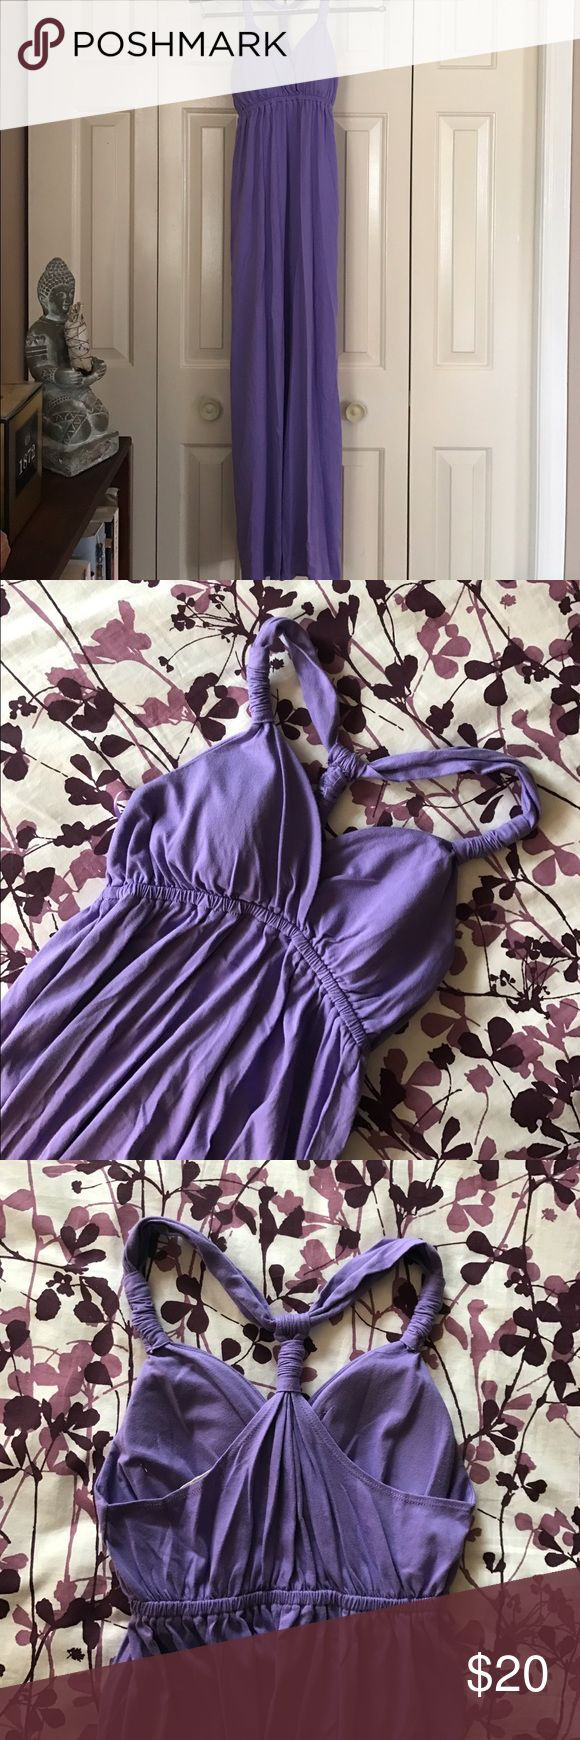 Maxi sundress Pink rose purple maxi sundress with built in bra. Machine wash. Never worn Pink Rose Dresses Maxi